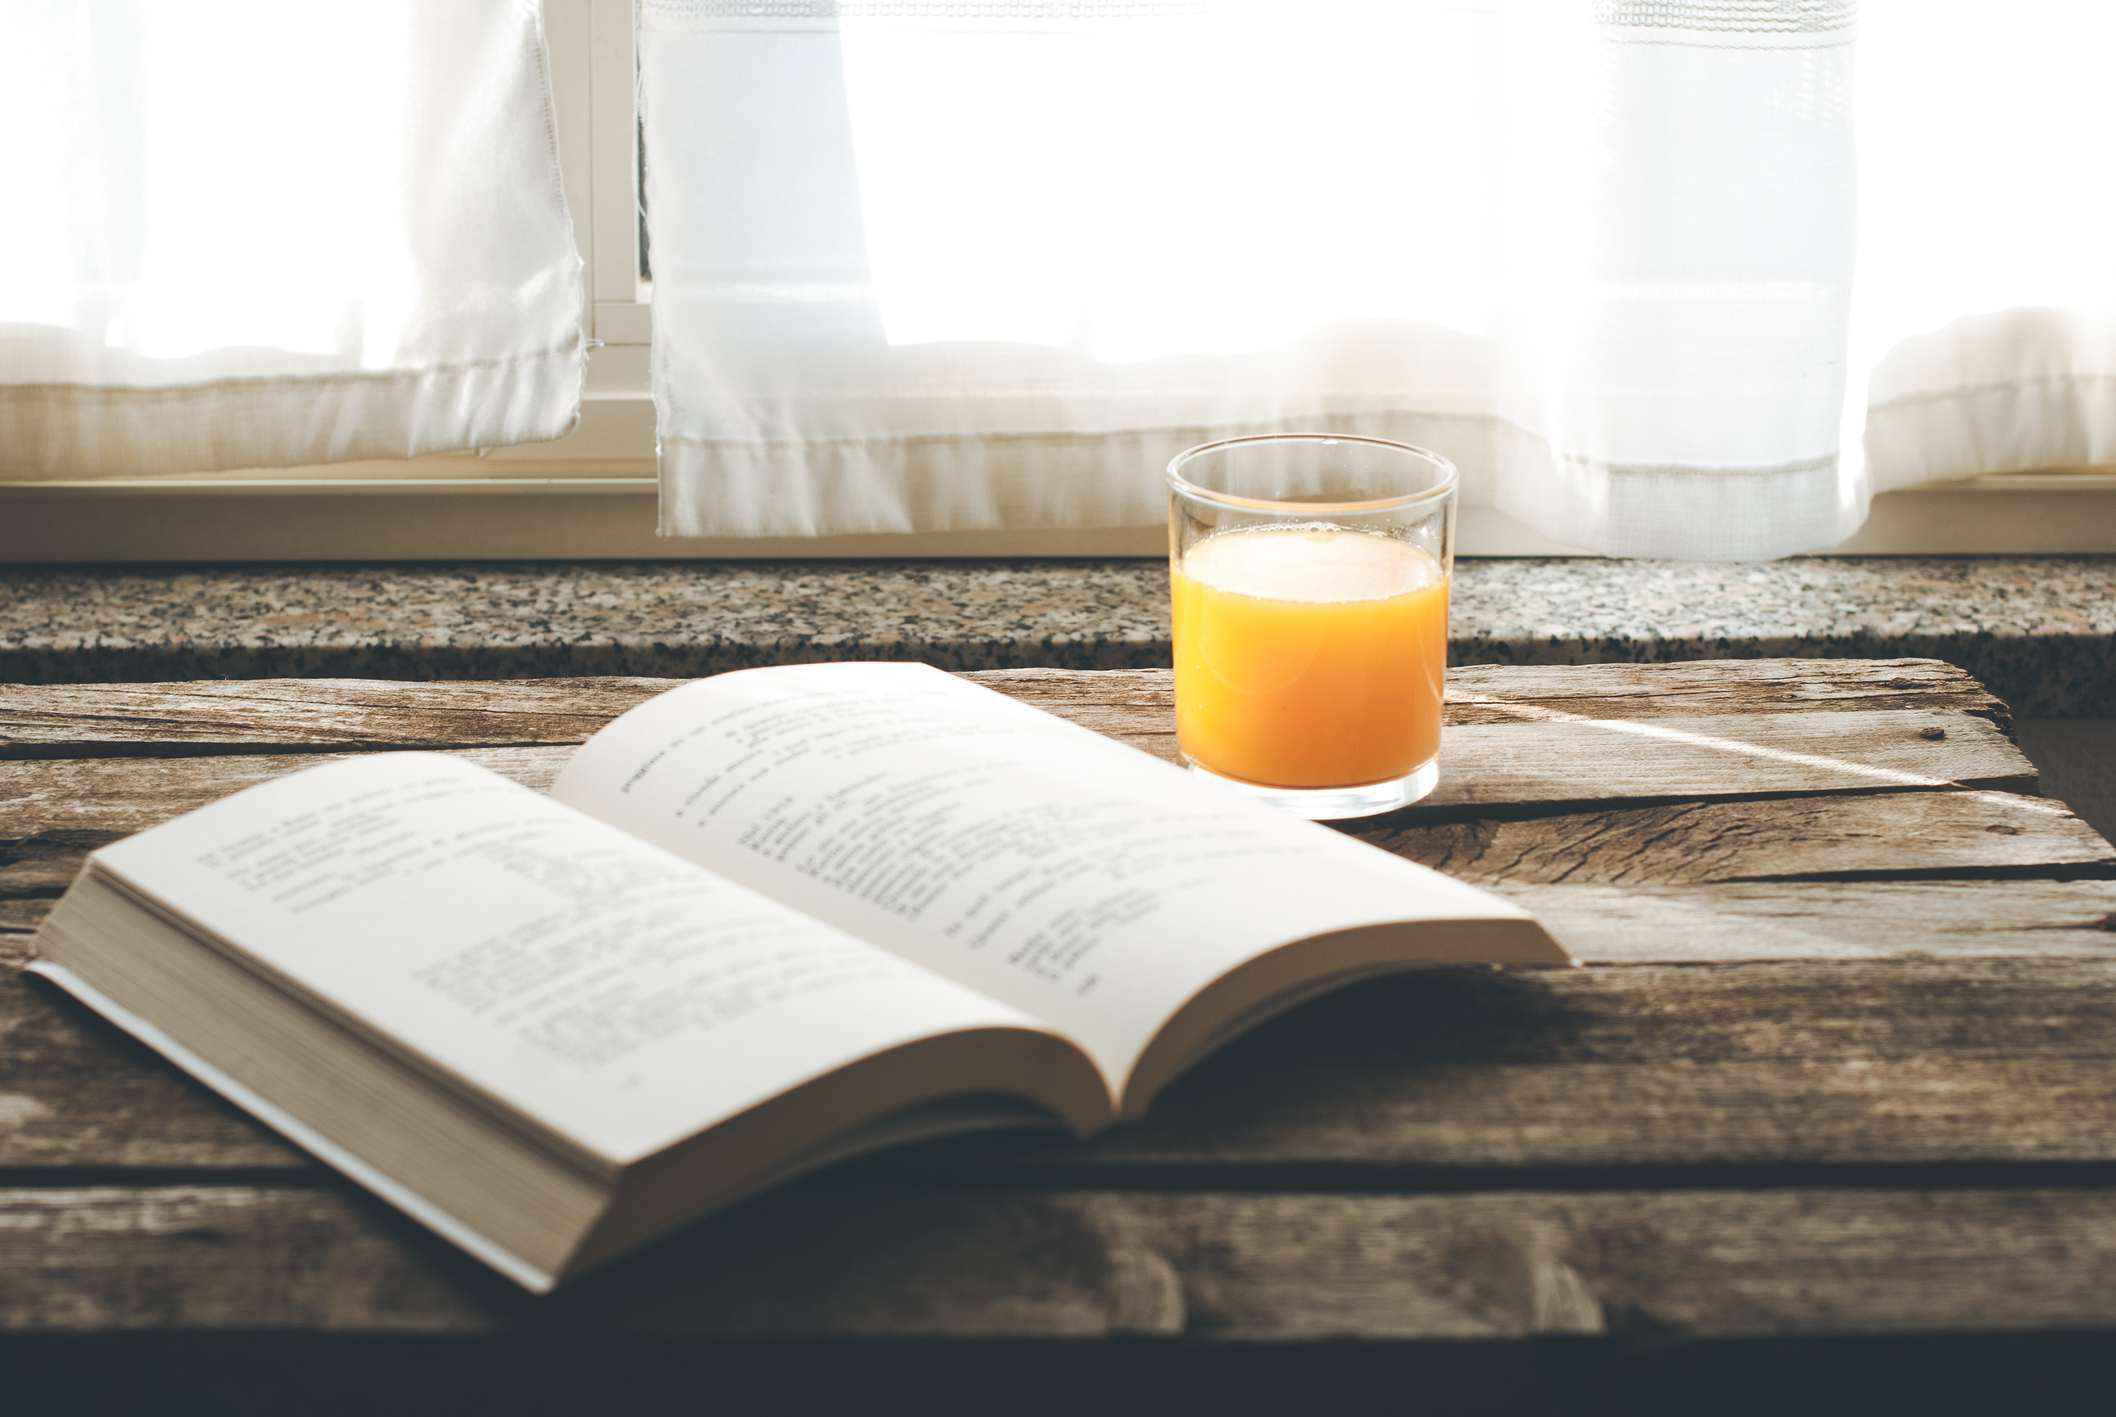 Book on table with orange juice